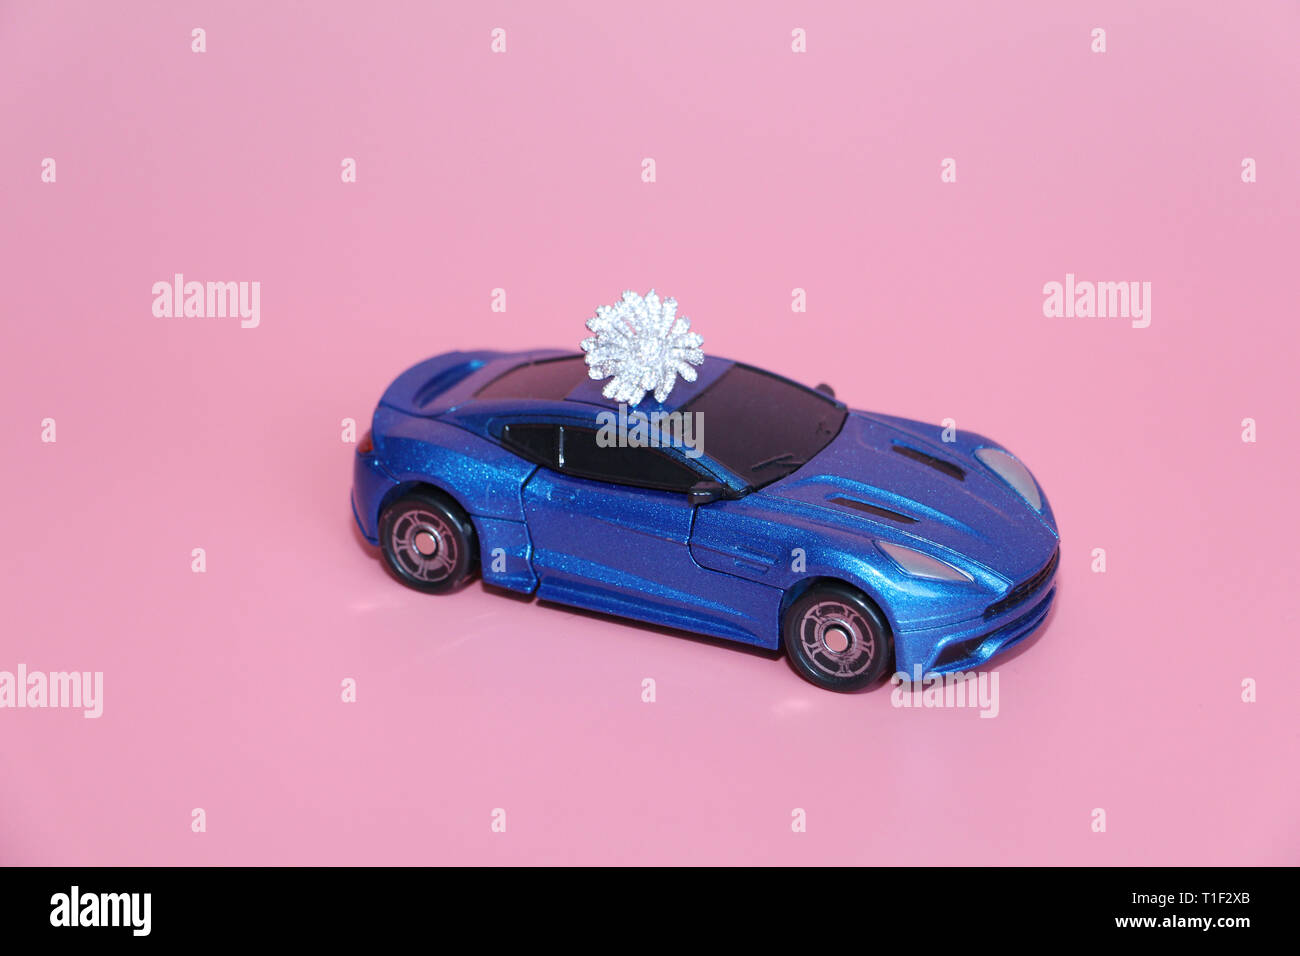 The blue sports car carries a crystal flower. The gift lies on the roof of the car. Pink background. Toy for children. There are no people. Stock Photo